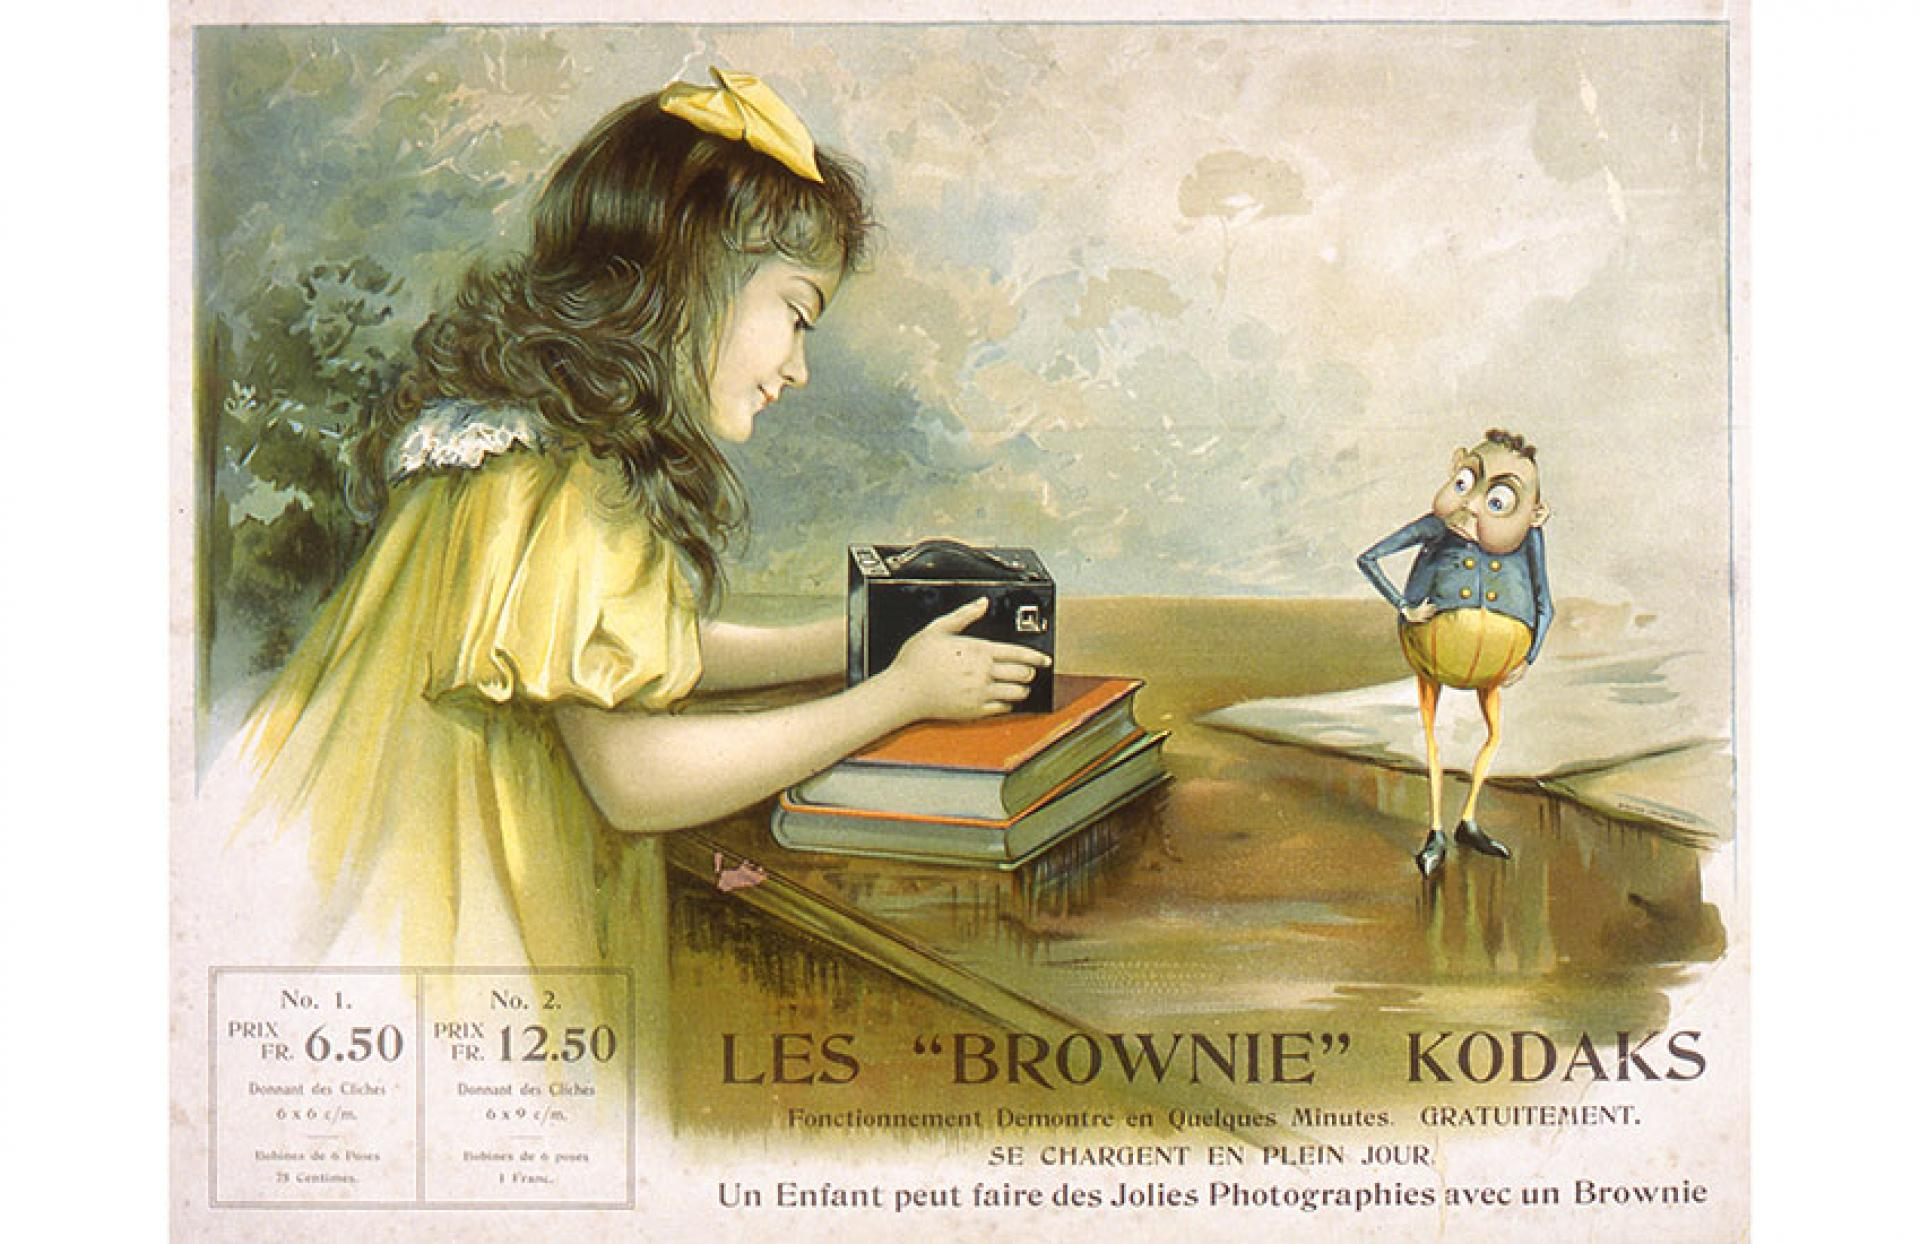 Ad showing the Brownie Camera